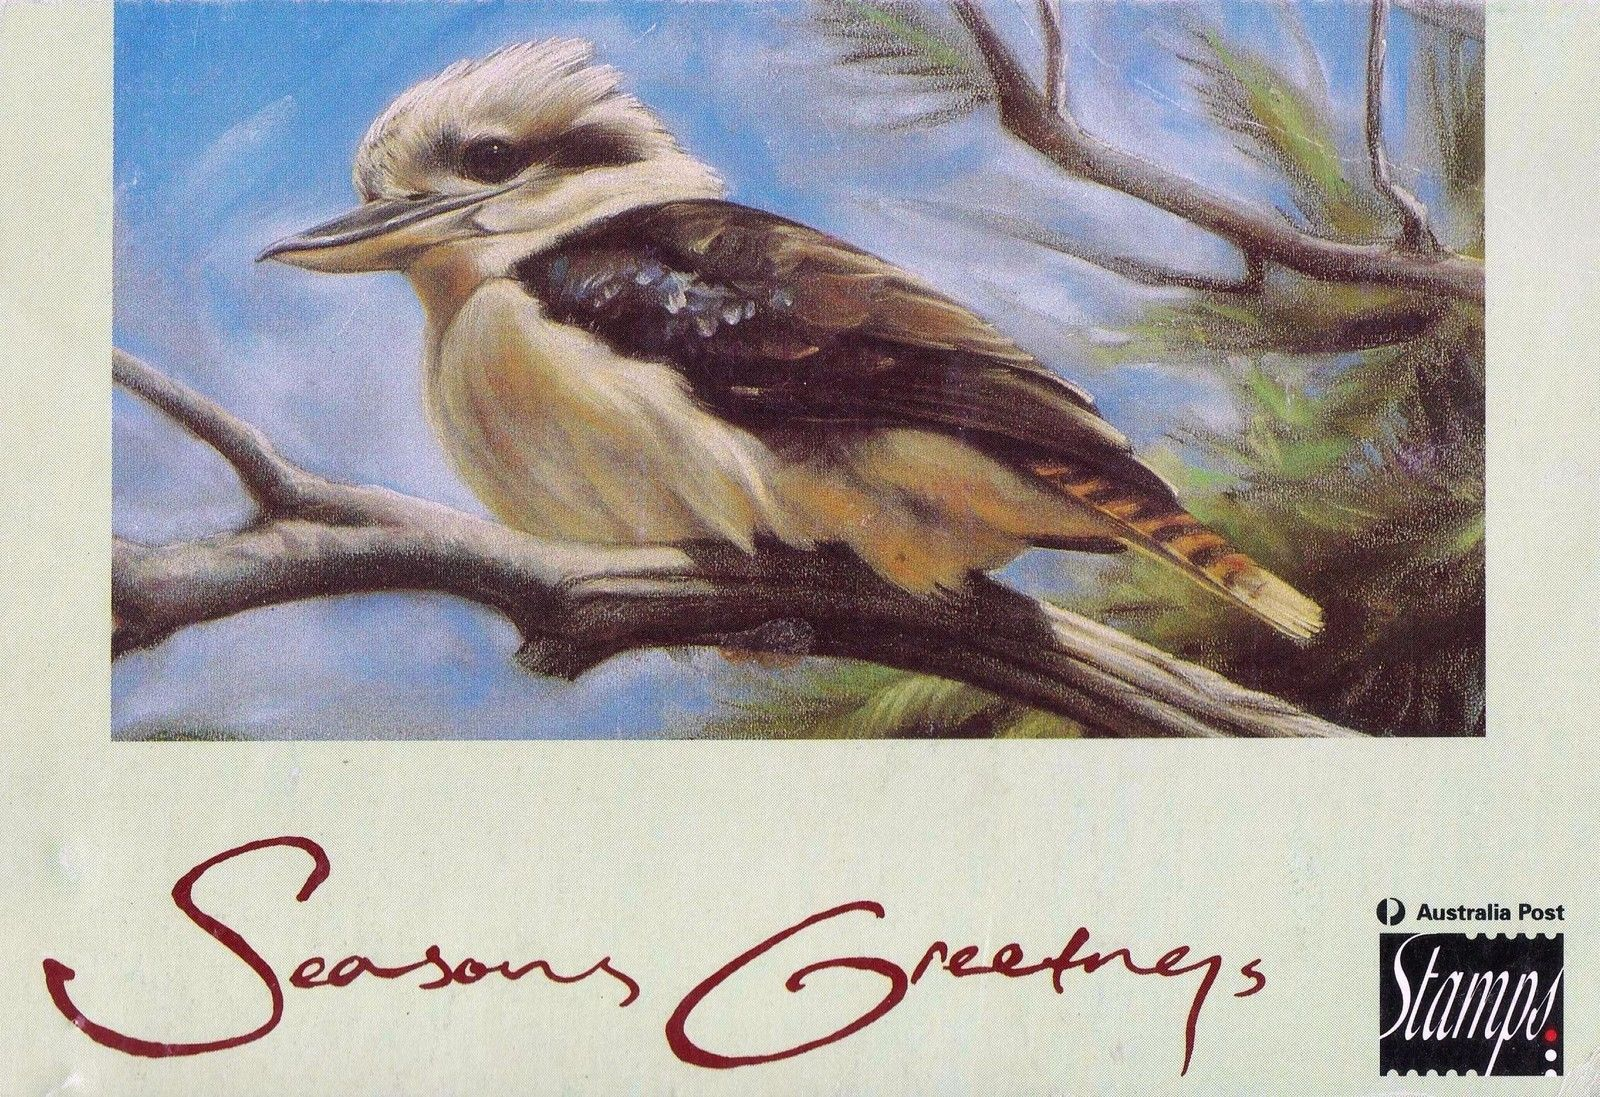 Australia Post 1993 Seasons Greetings 70c Birds Stamp